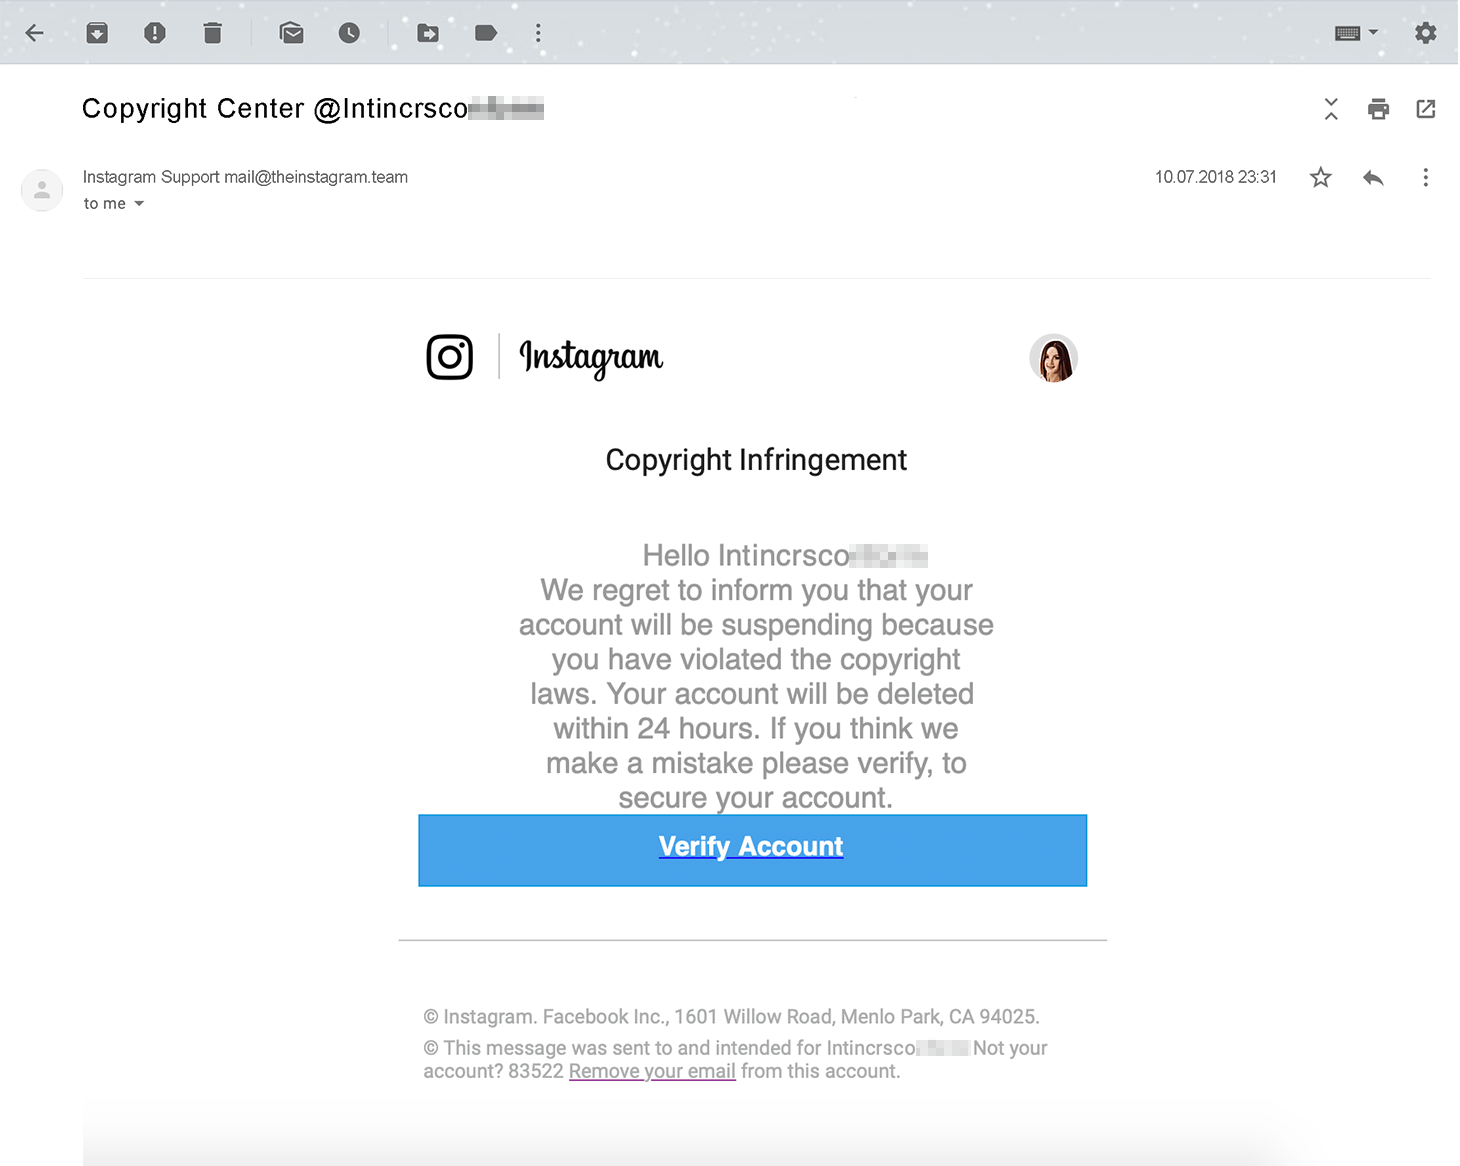 A screenshot of phishing e-mail with fake copyright infringement notification on Instagram